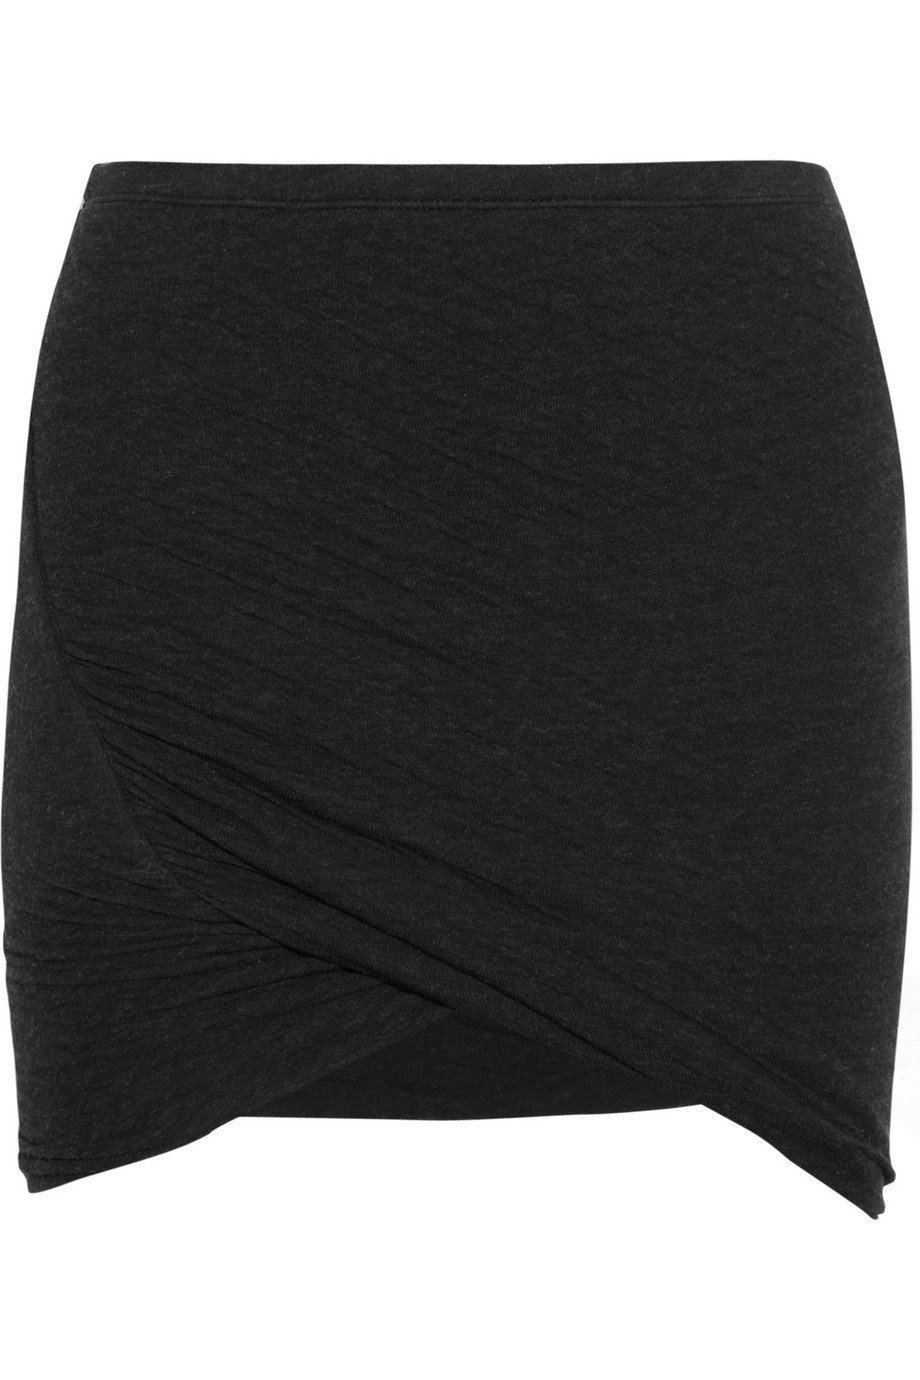 Étoile Isabel Marant | Nuta ruched cotton-jersey mini skirt | NET-A-PORTER.COM